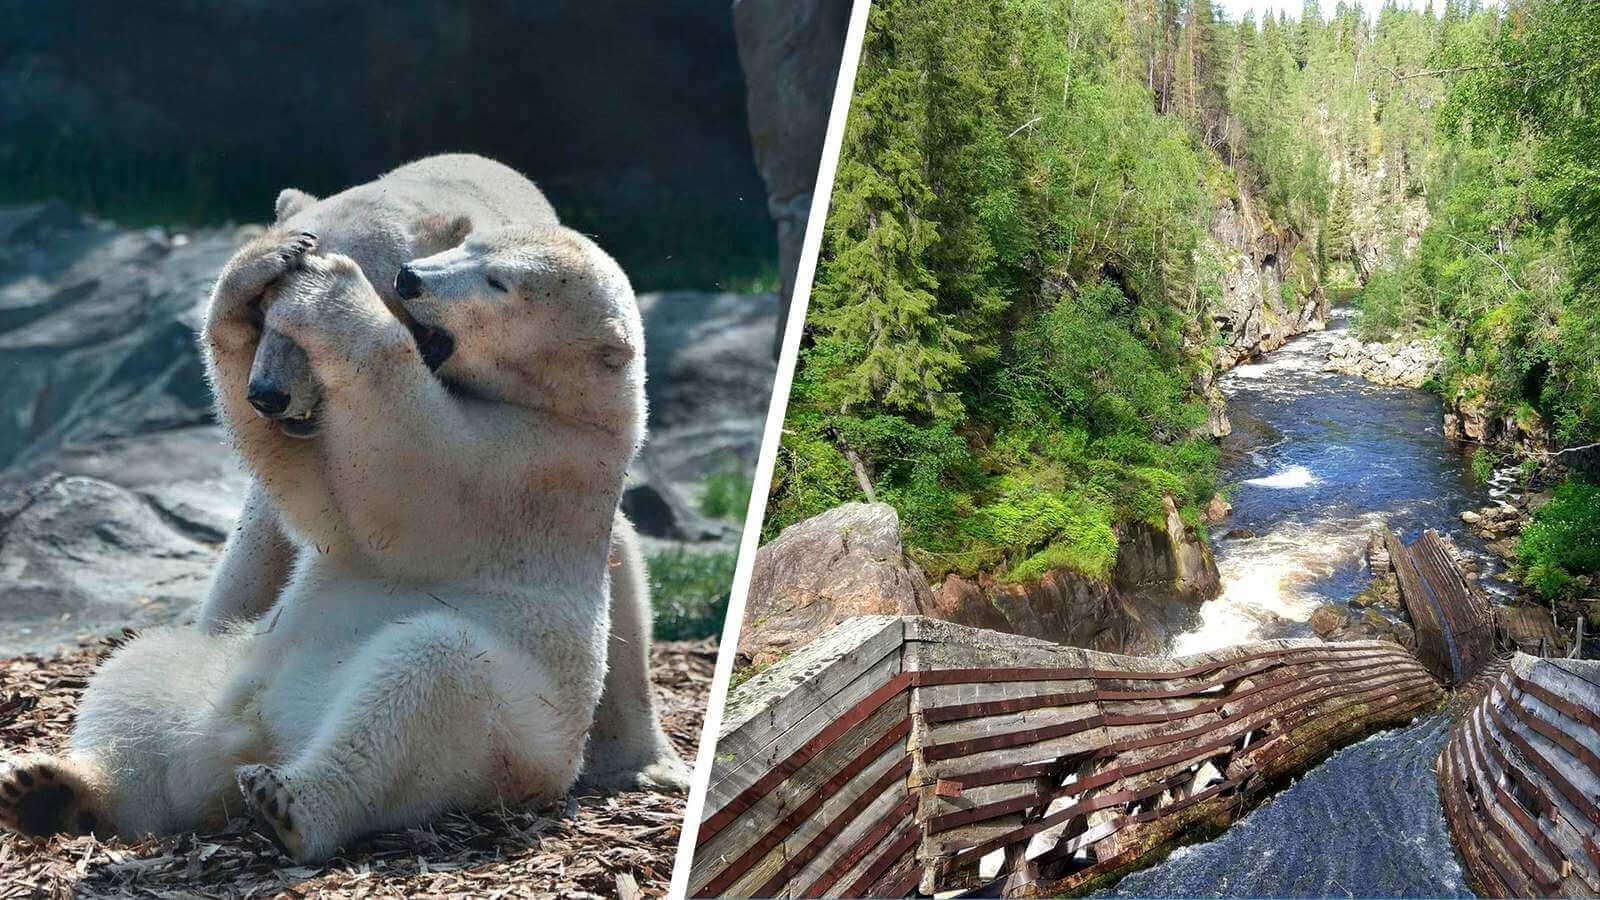 Get ready for a full day adventure in Finland's magical nature.